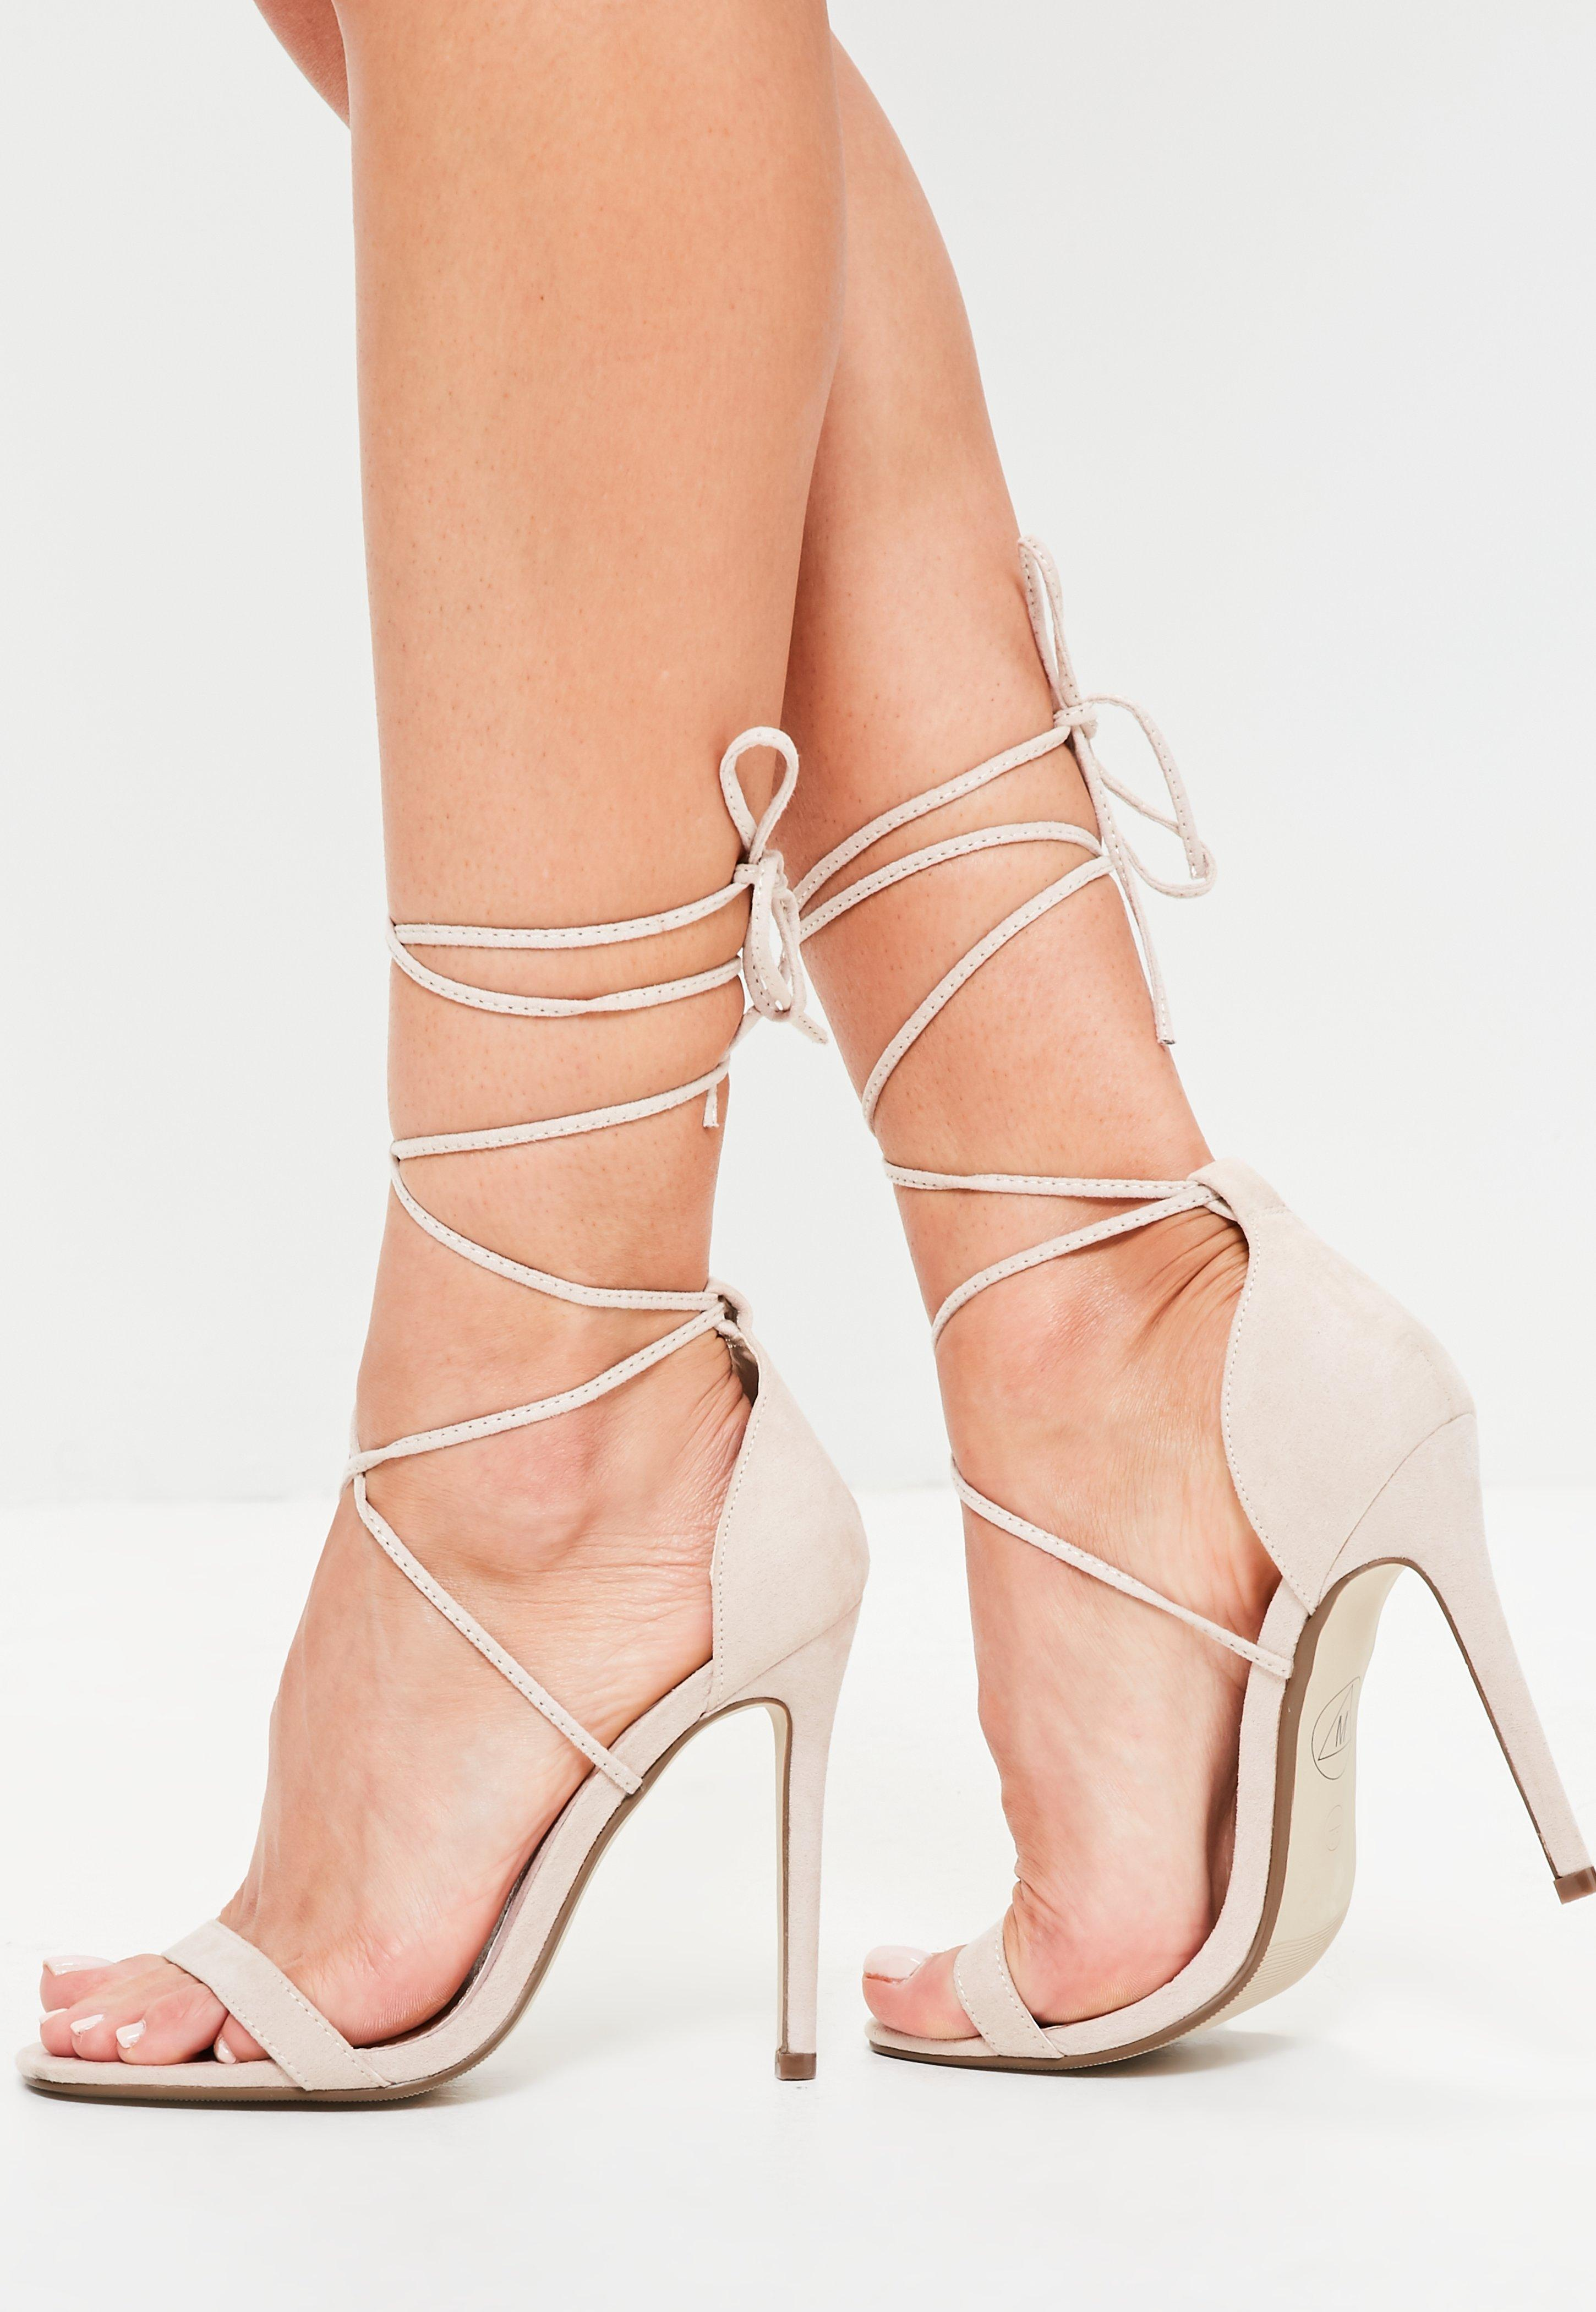 Missguided. Women's Natural Lace Up Barely There Heeled Sandals Nude